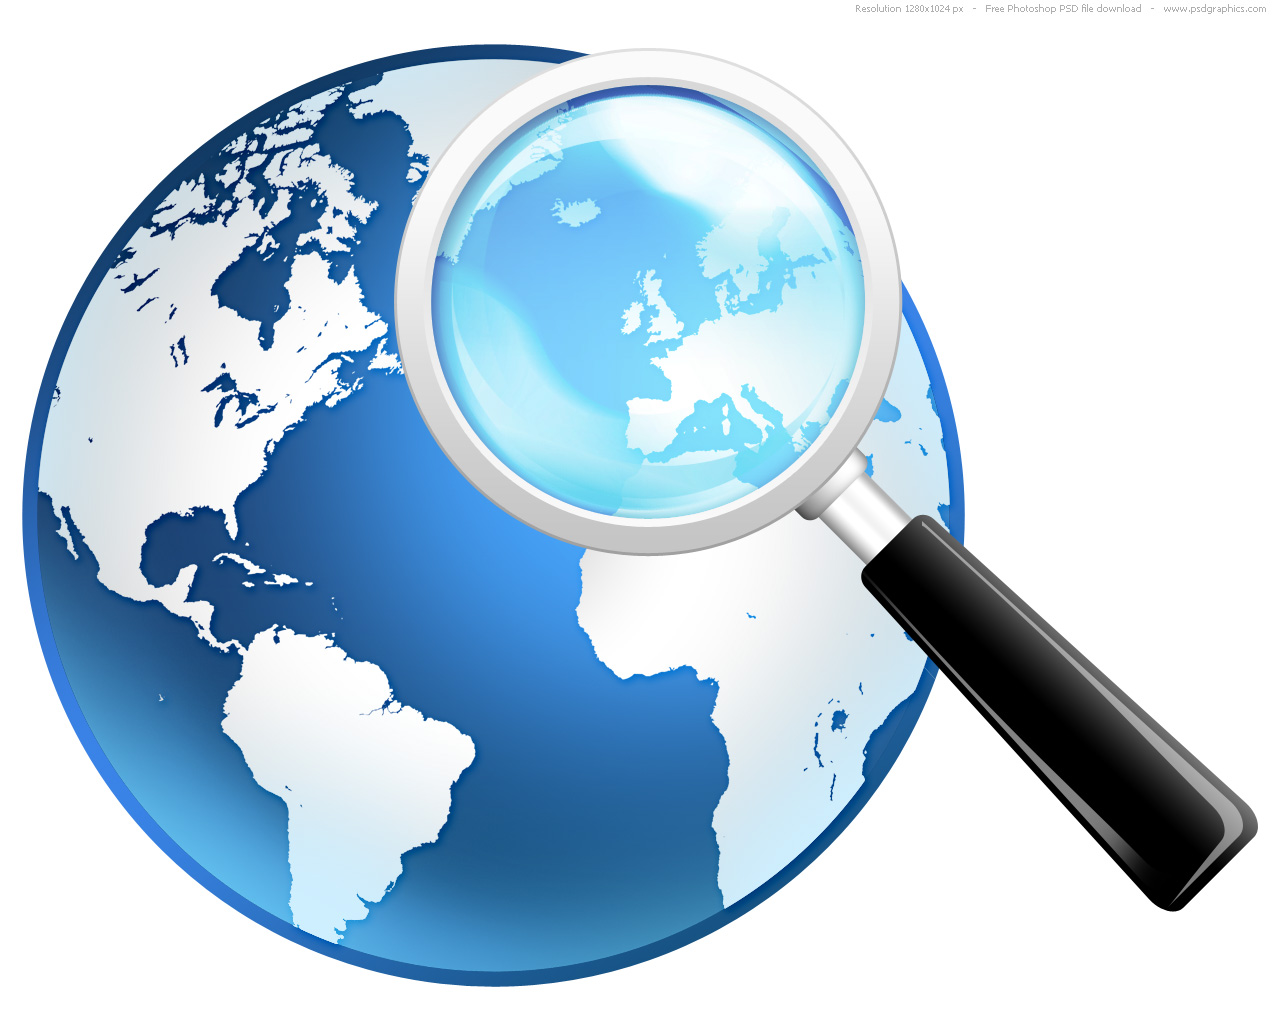 Full size – JPG preview: Global search icon